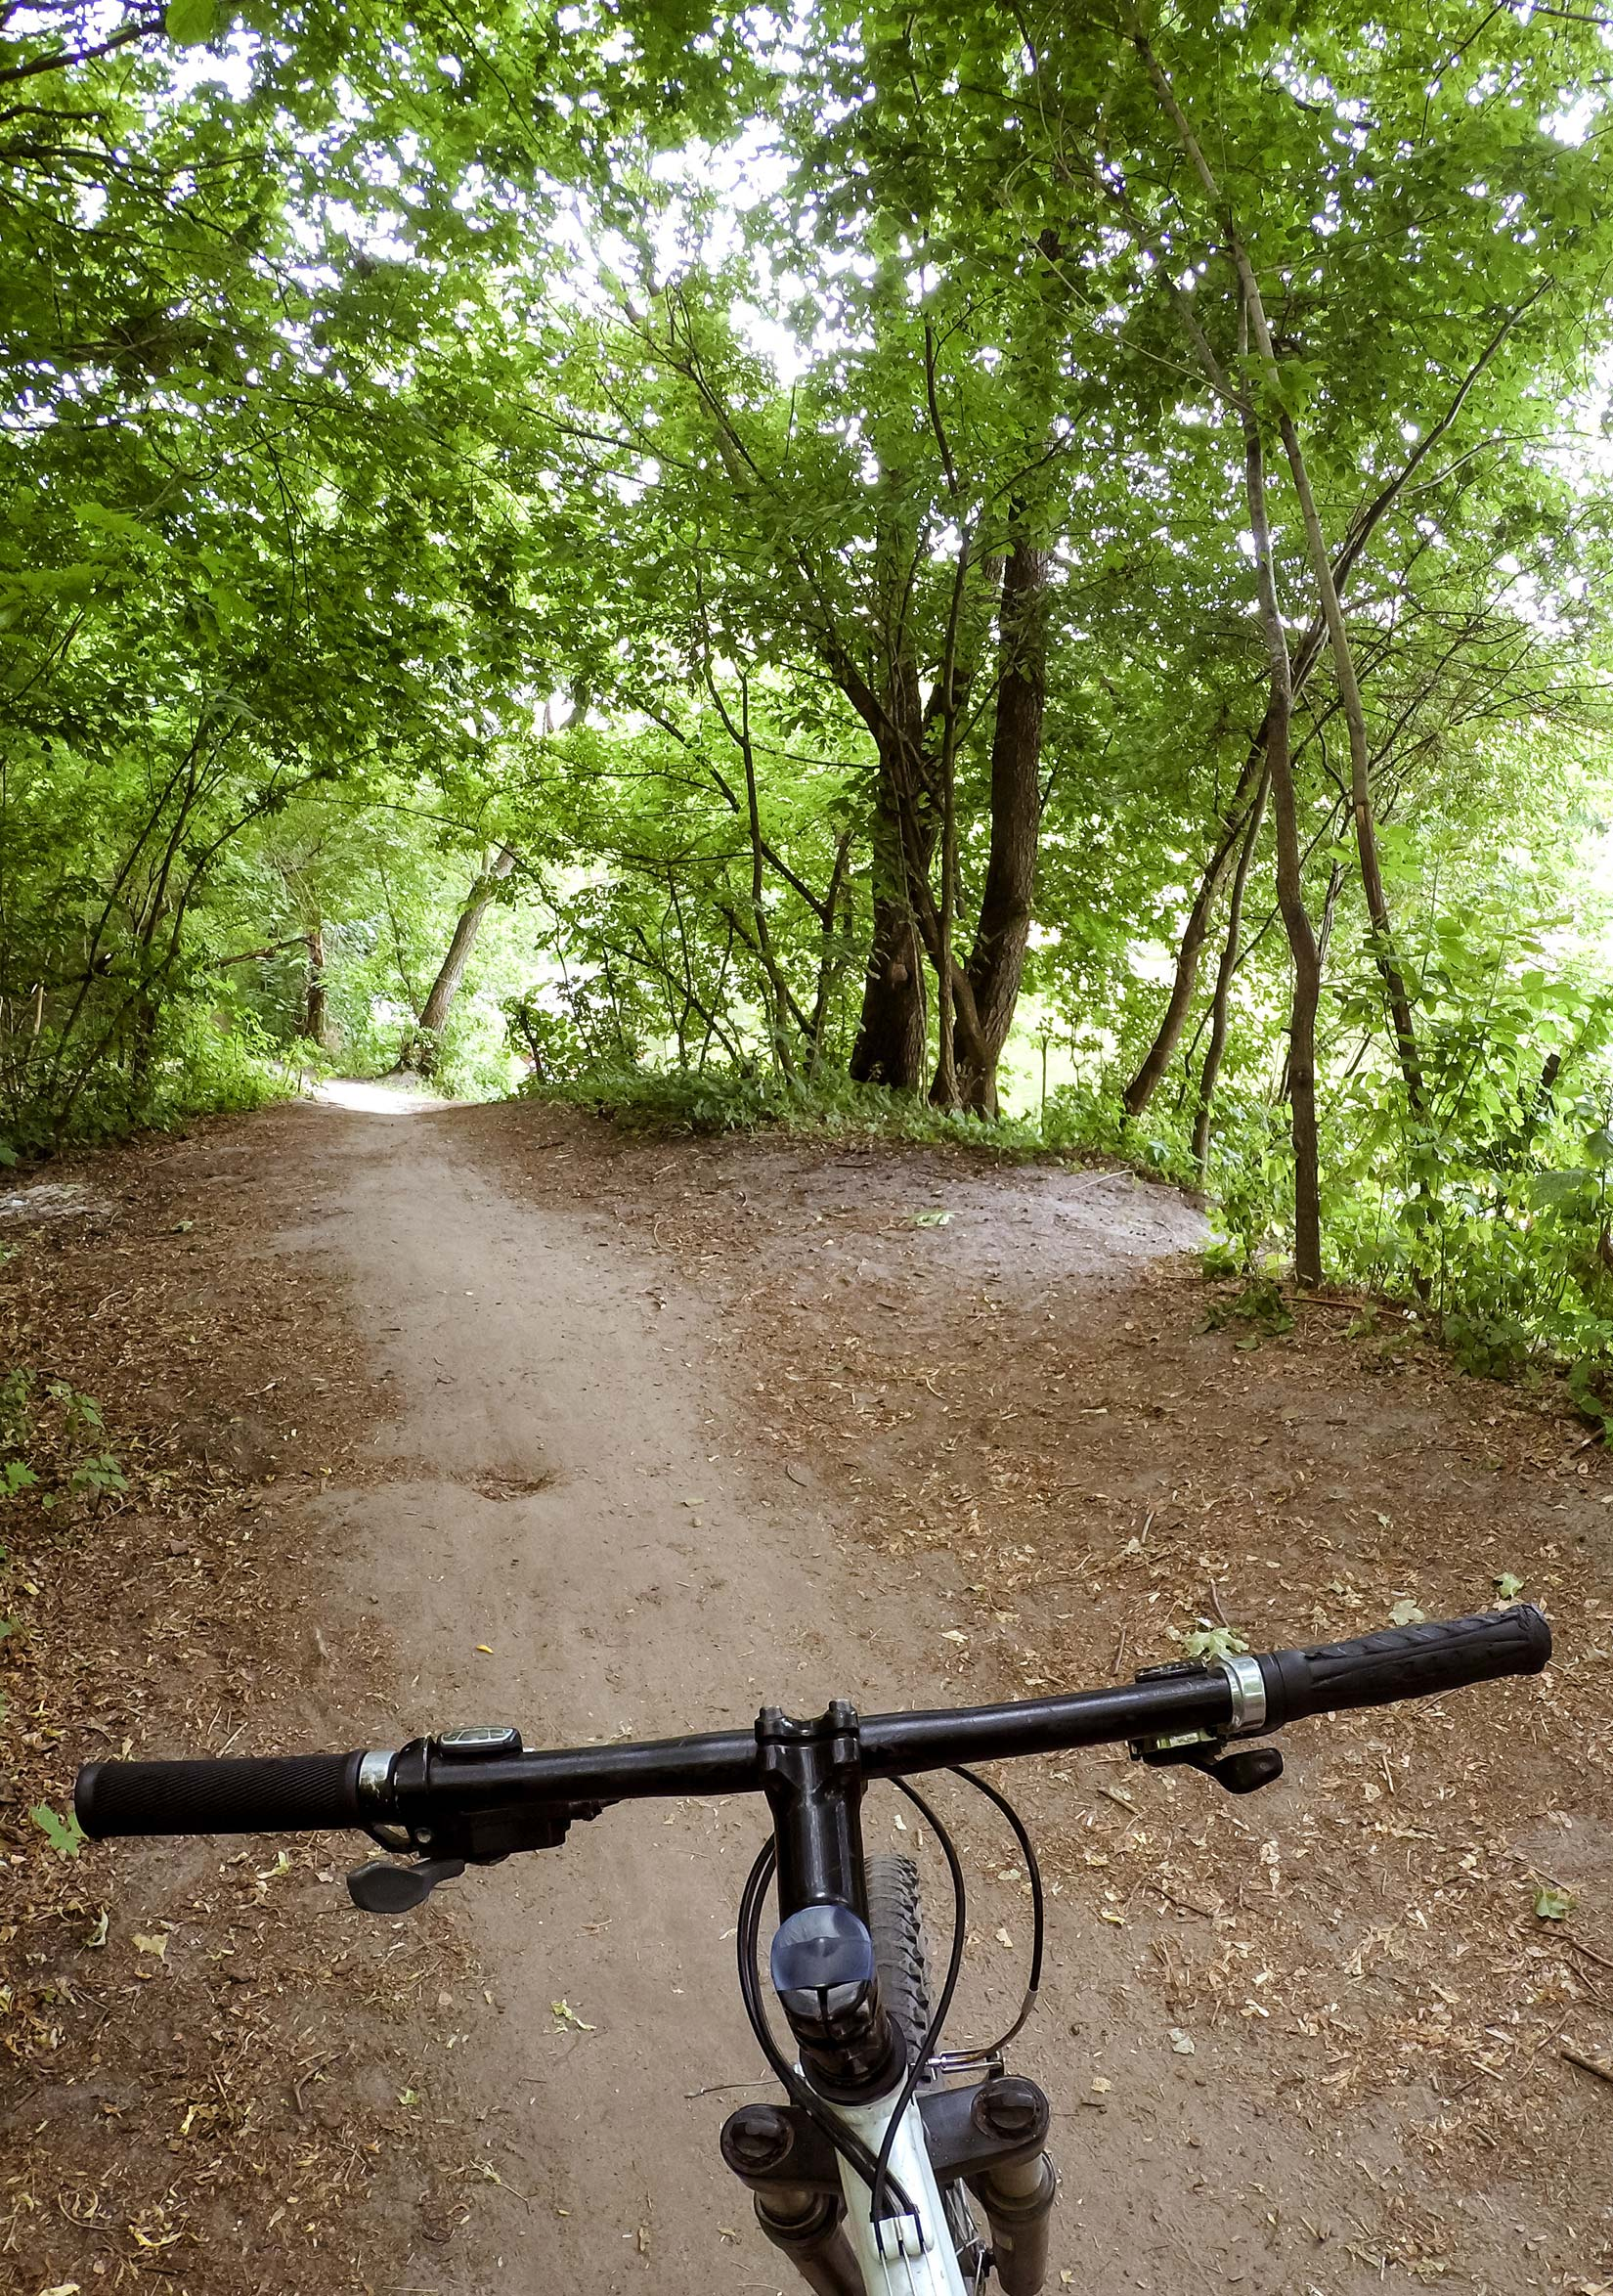 View over cycle handlebars to the track ahead through the woods